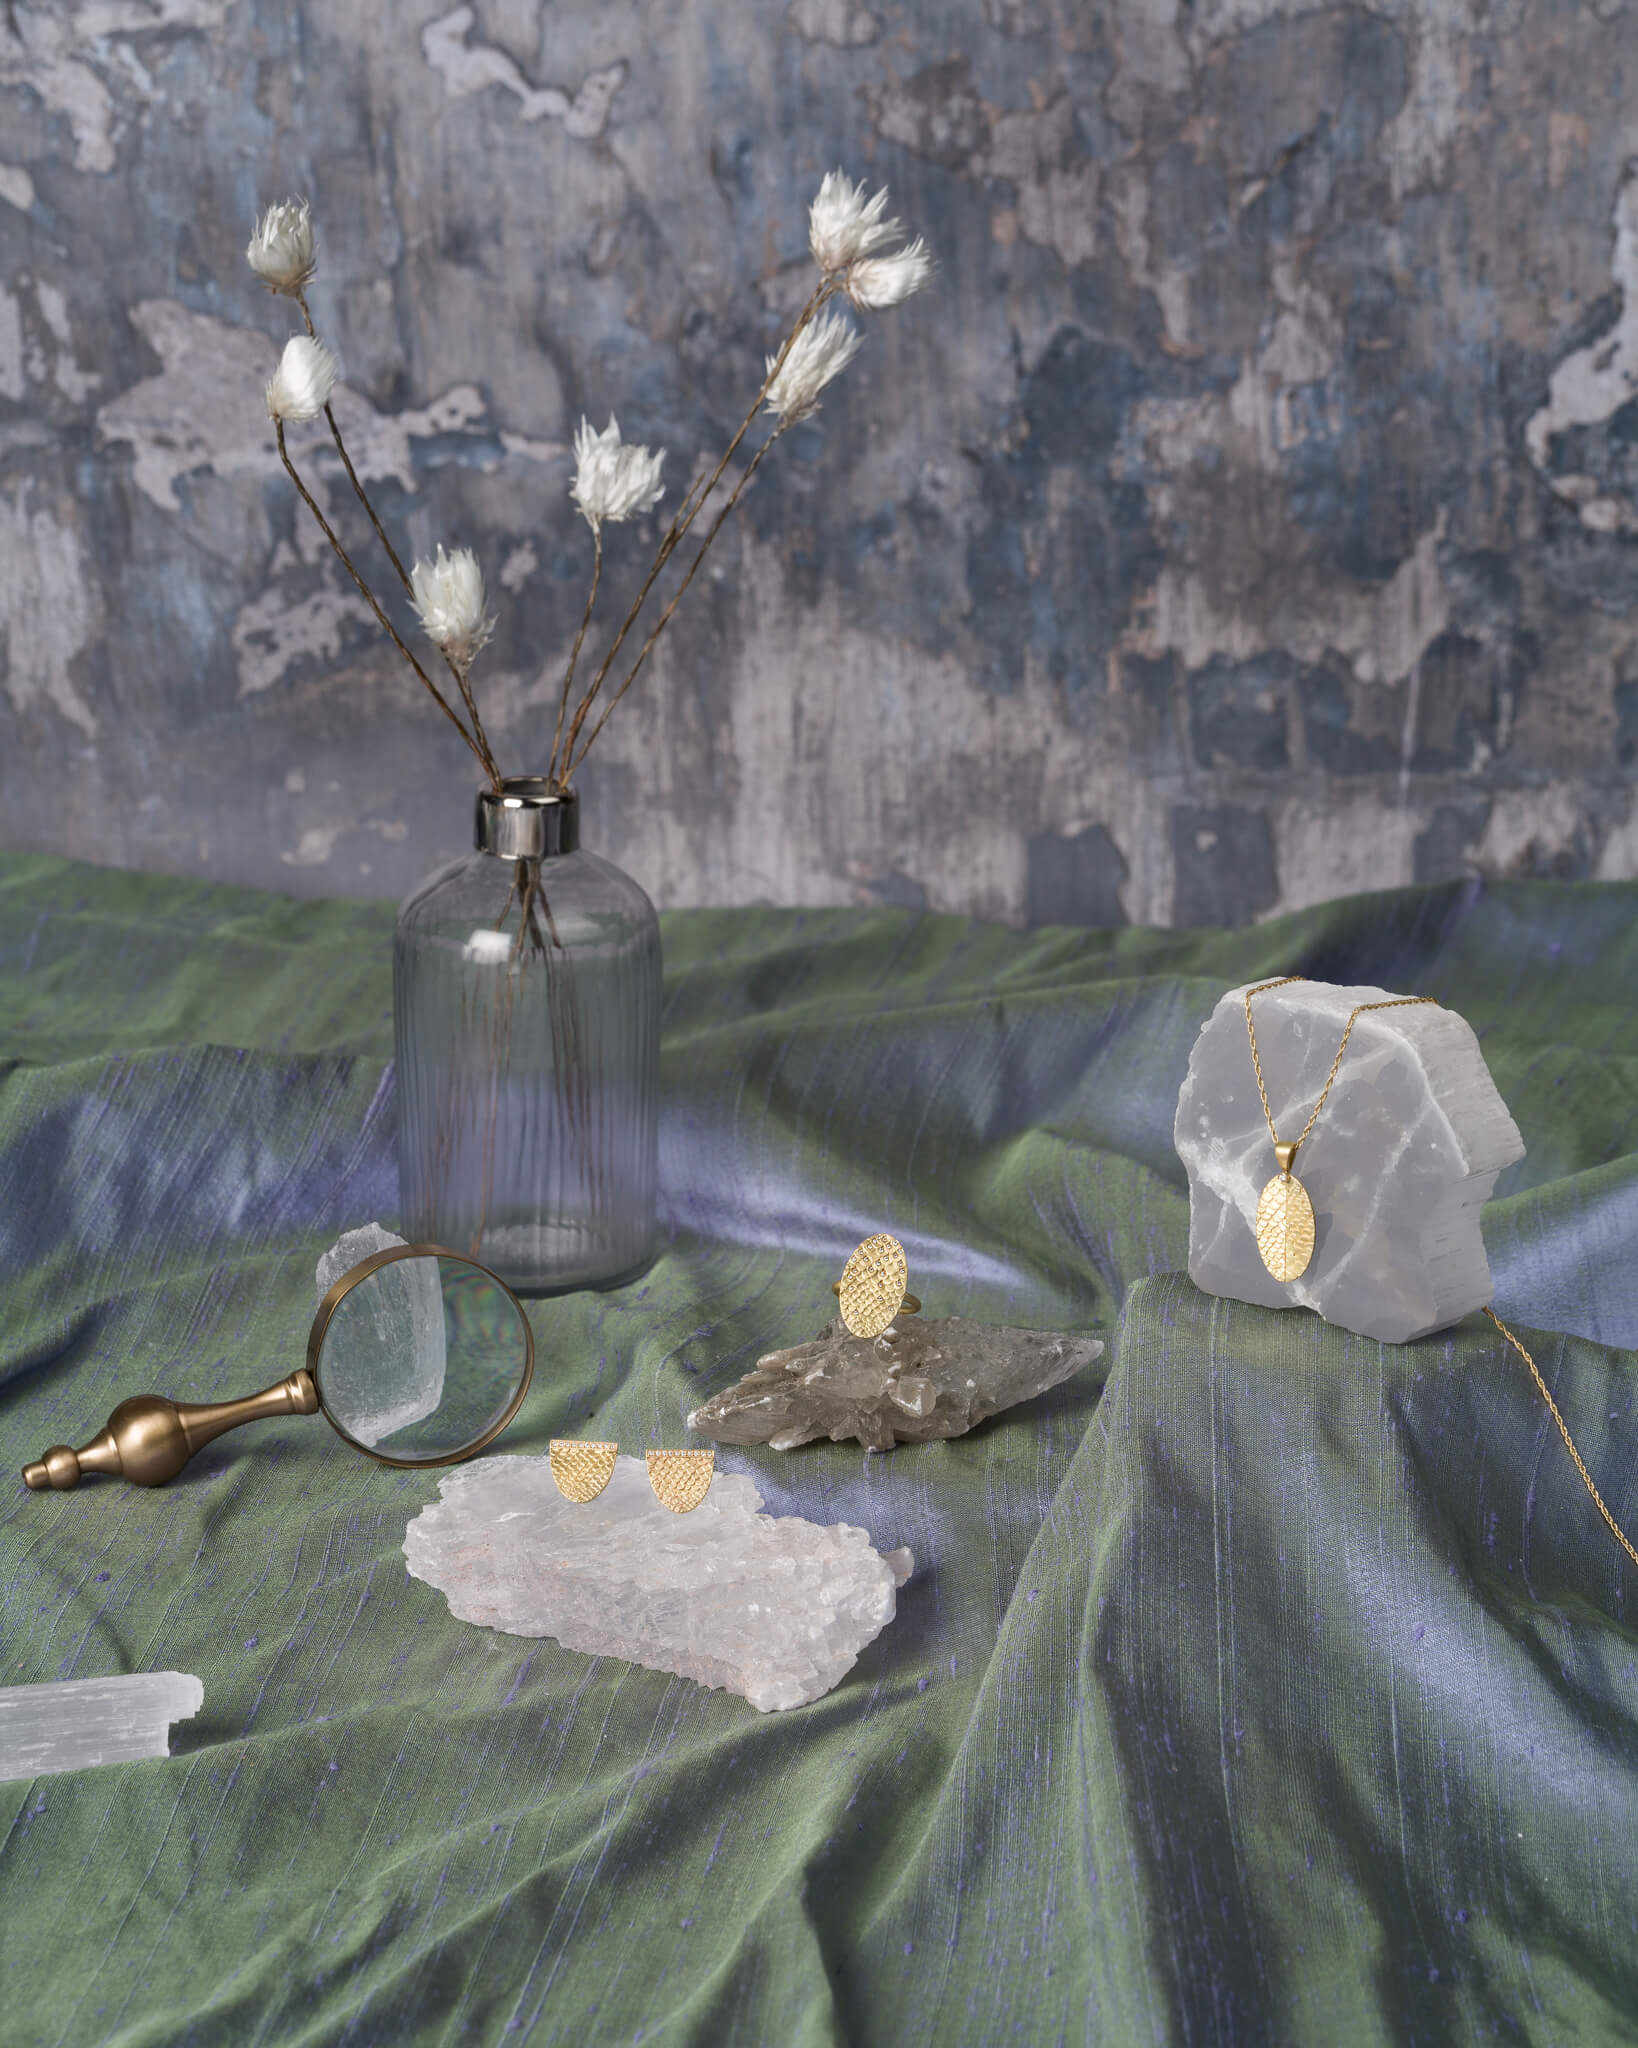 Still Lifes - Alison Macleod - Photo by Gabriela Silveira